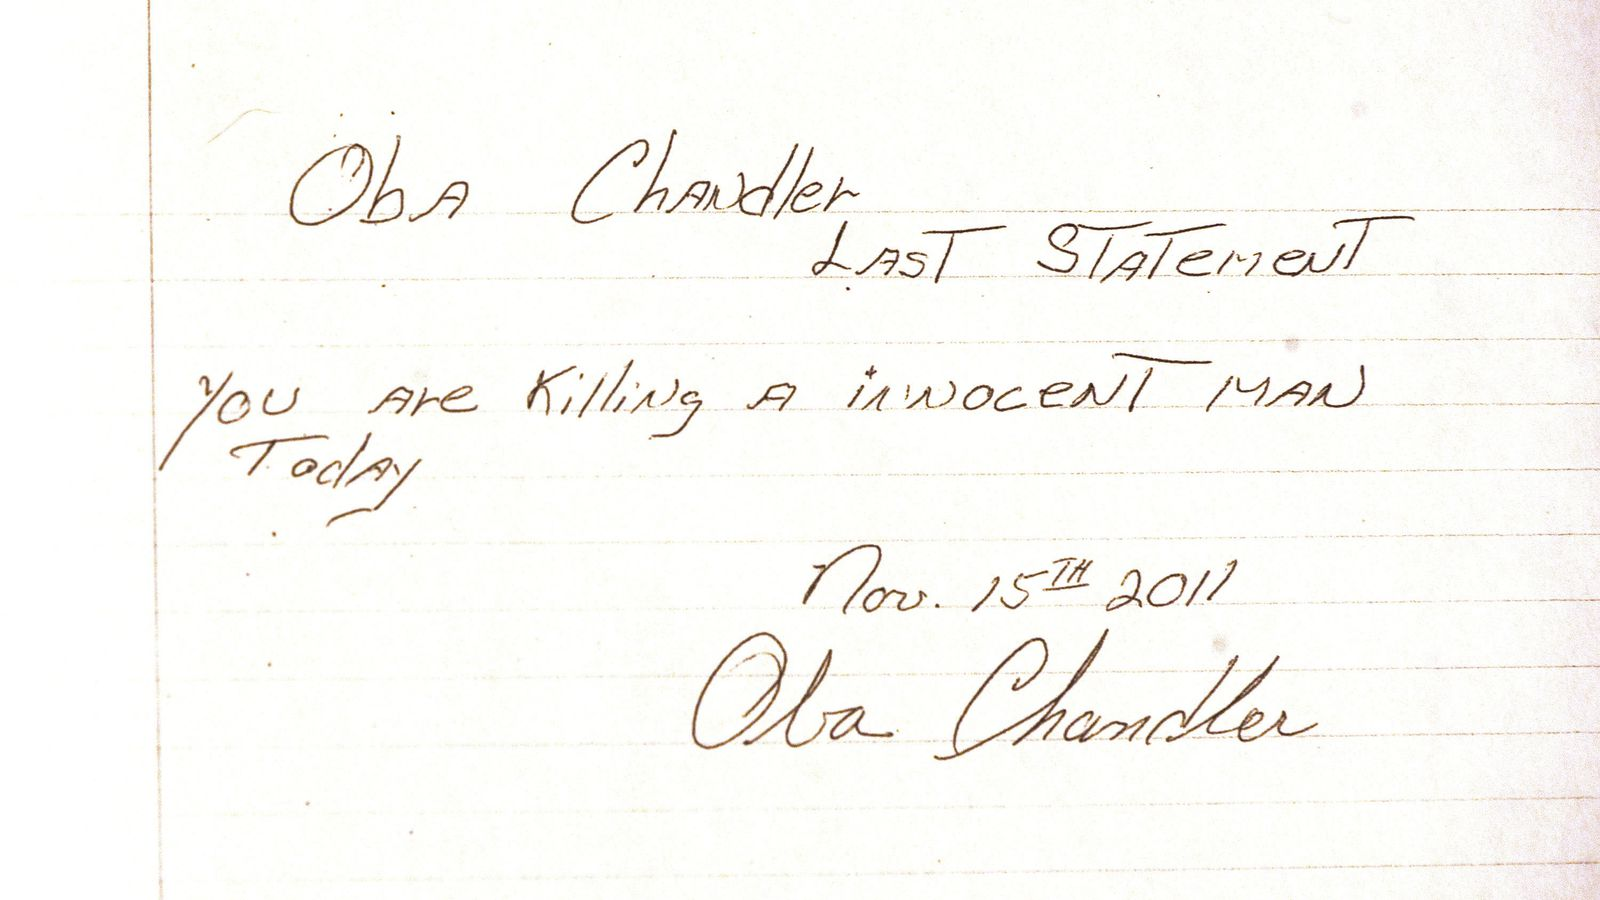 From 2011 Oba Chandler Leaves Behind One Last Denial Before He Is Executed